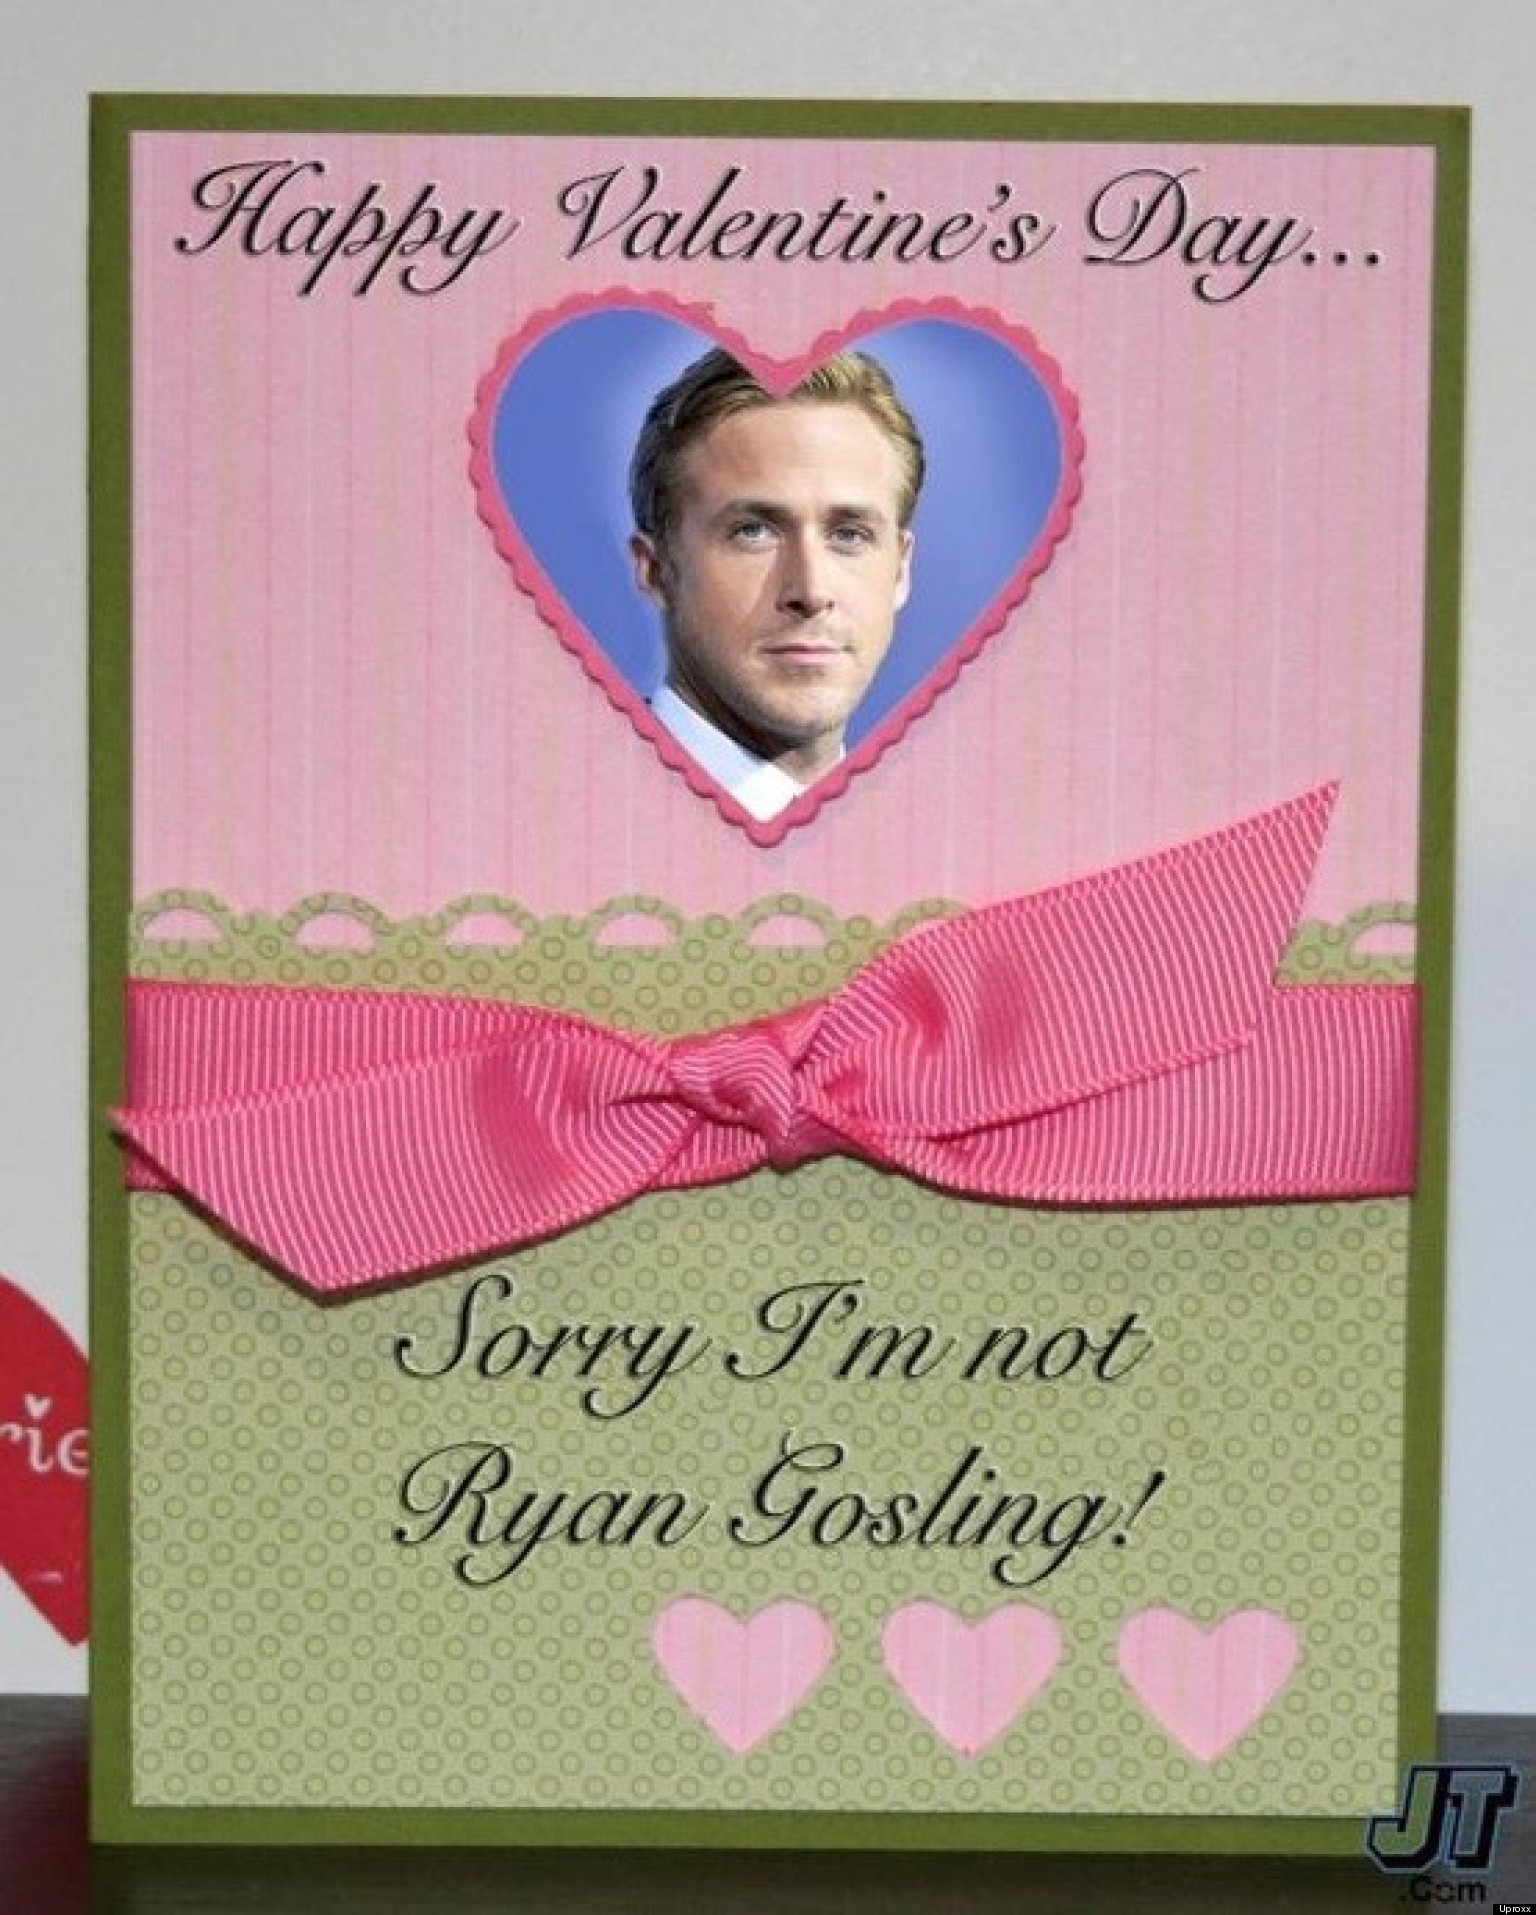 25 Funny Valentine's Day Cards (PHOTOS)